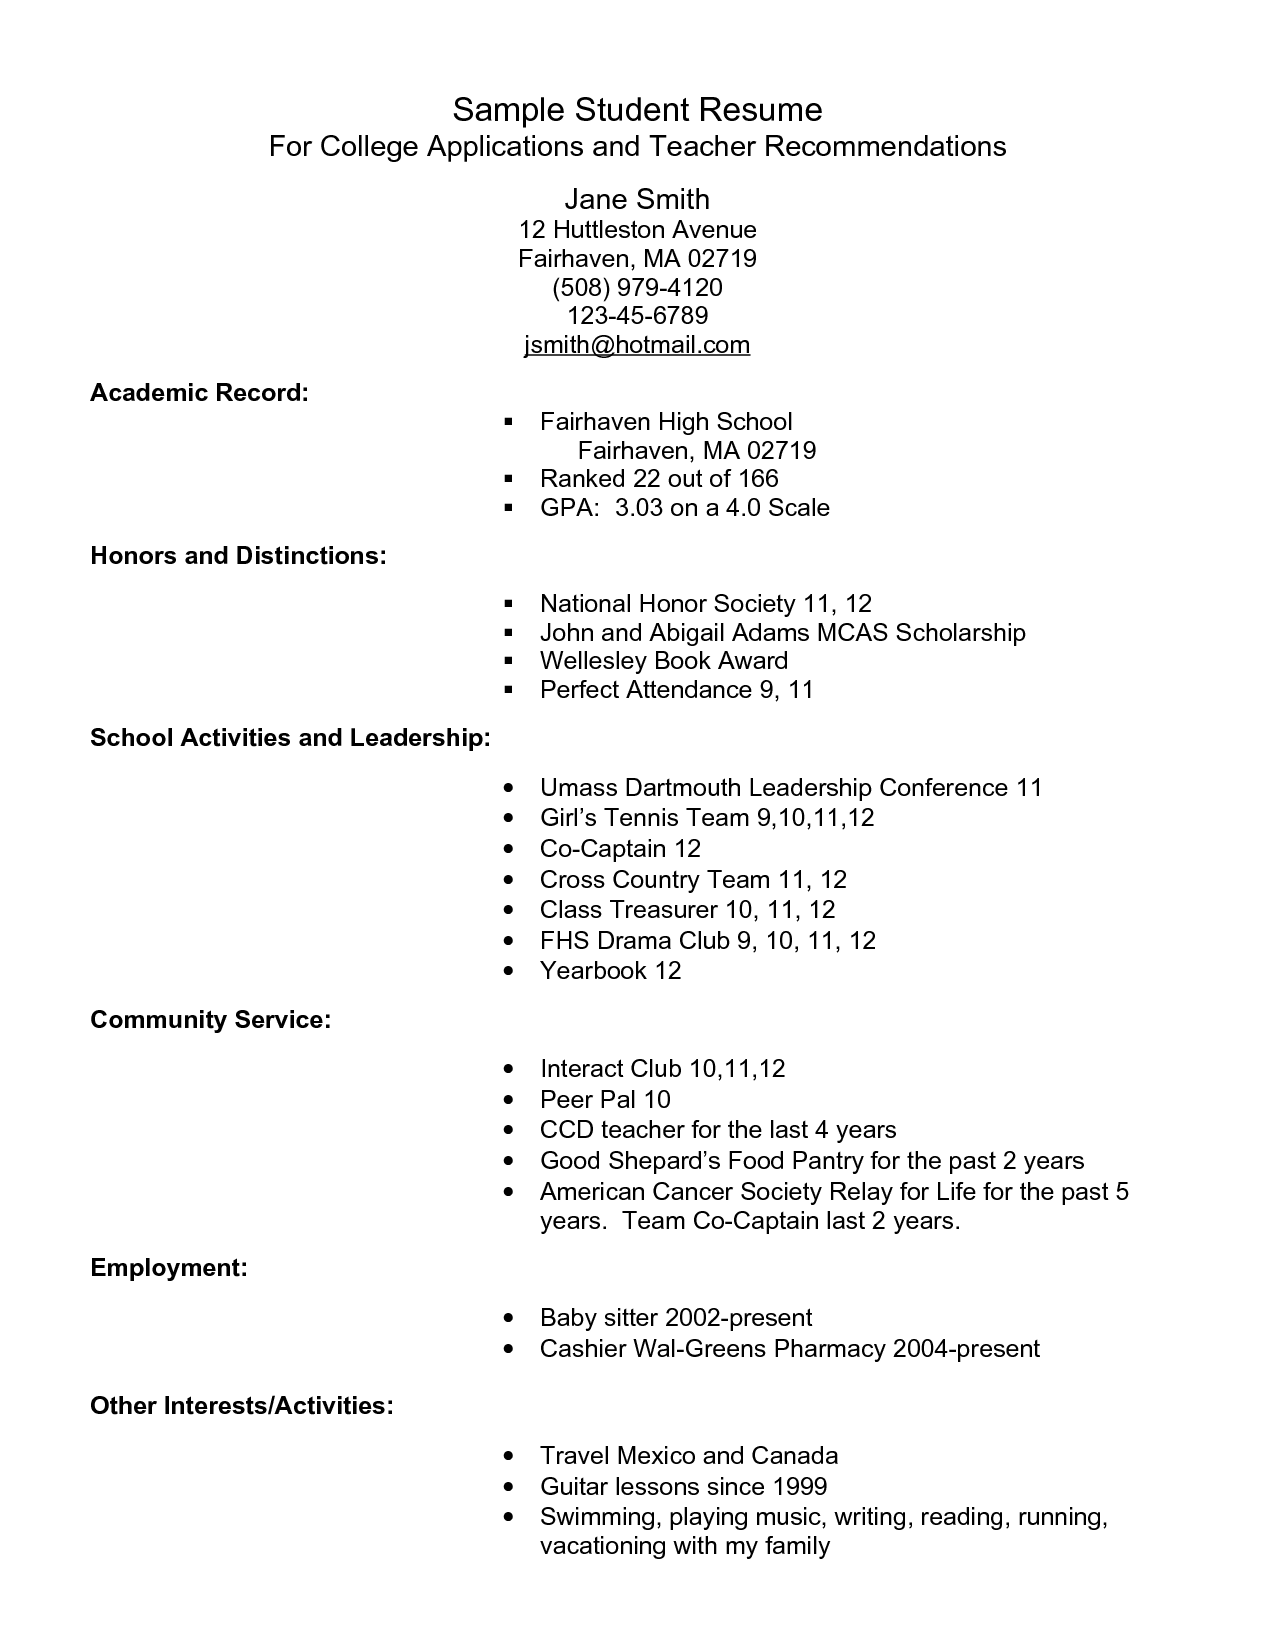 resume for applying to college